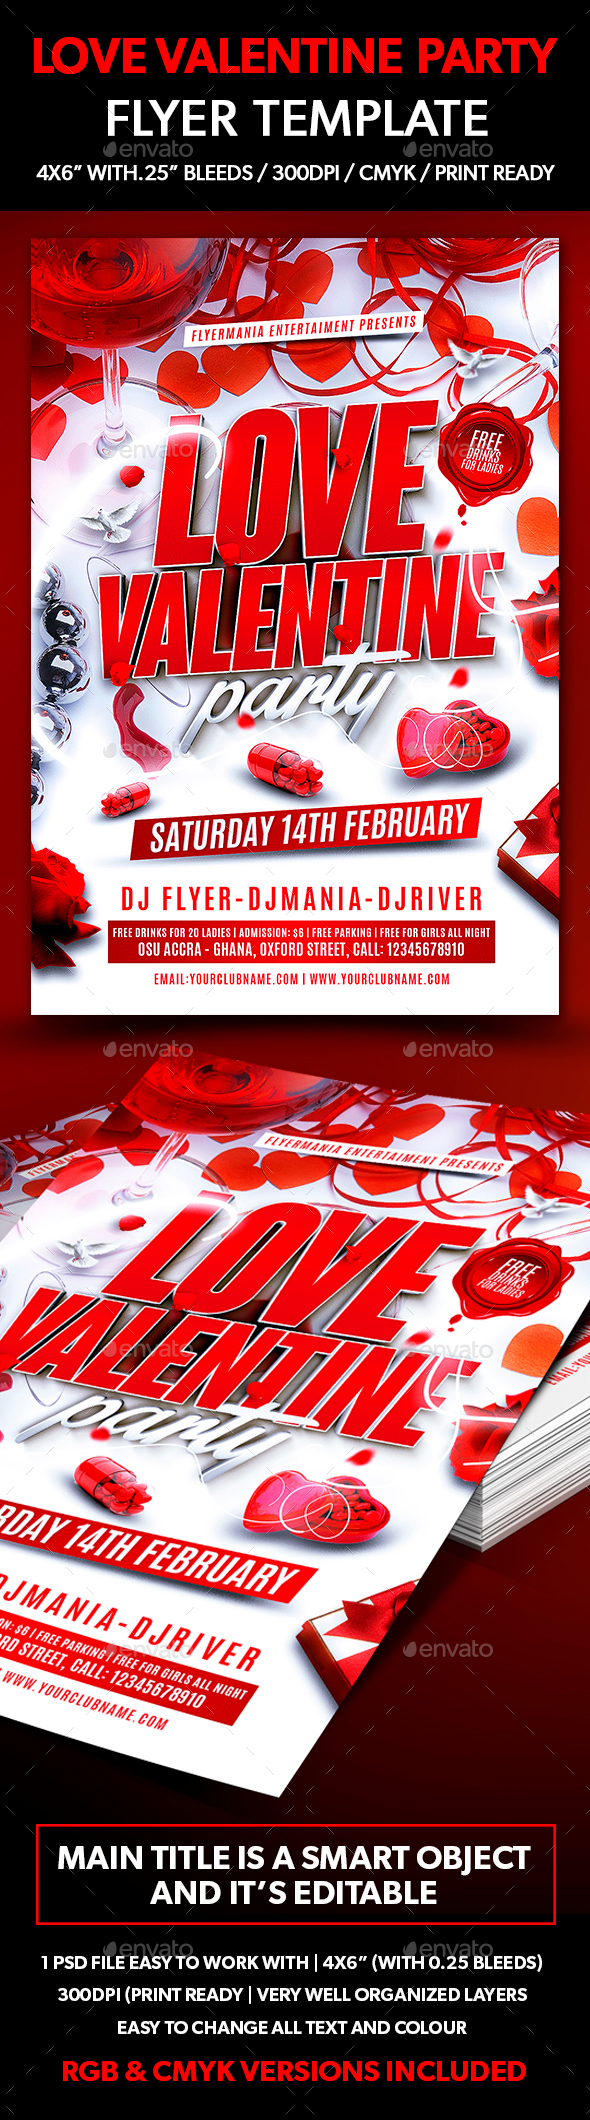 Love Valentine Party Flyer Template